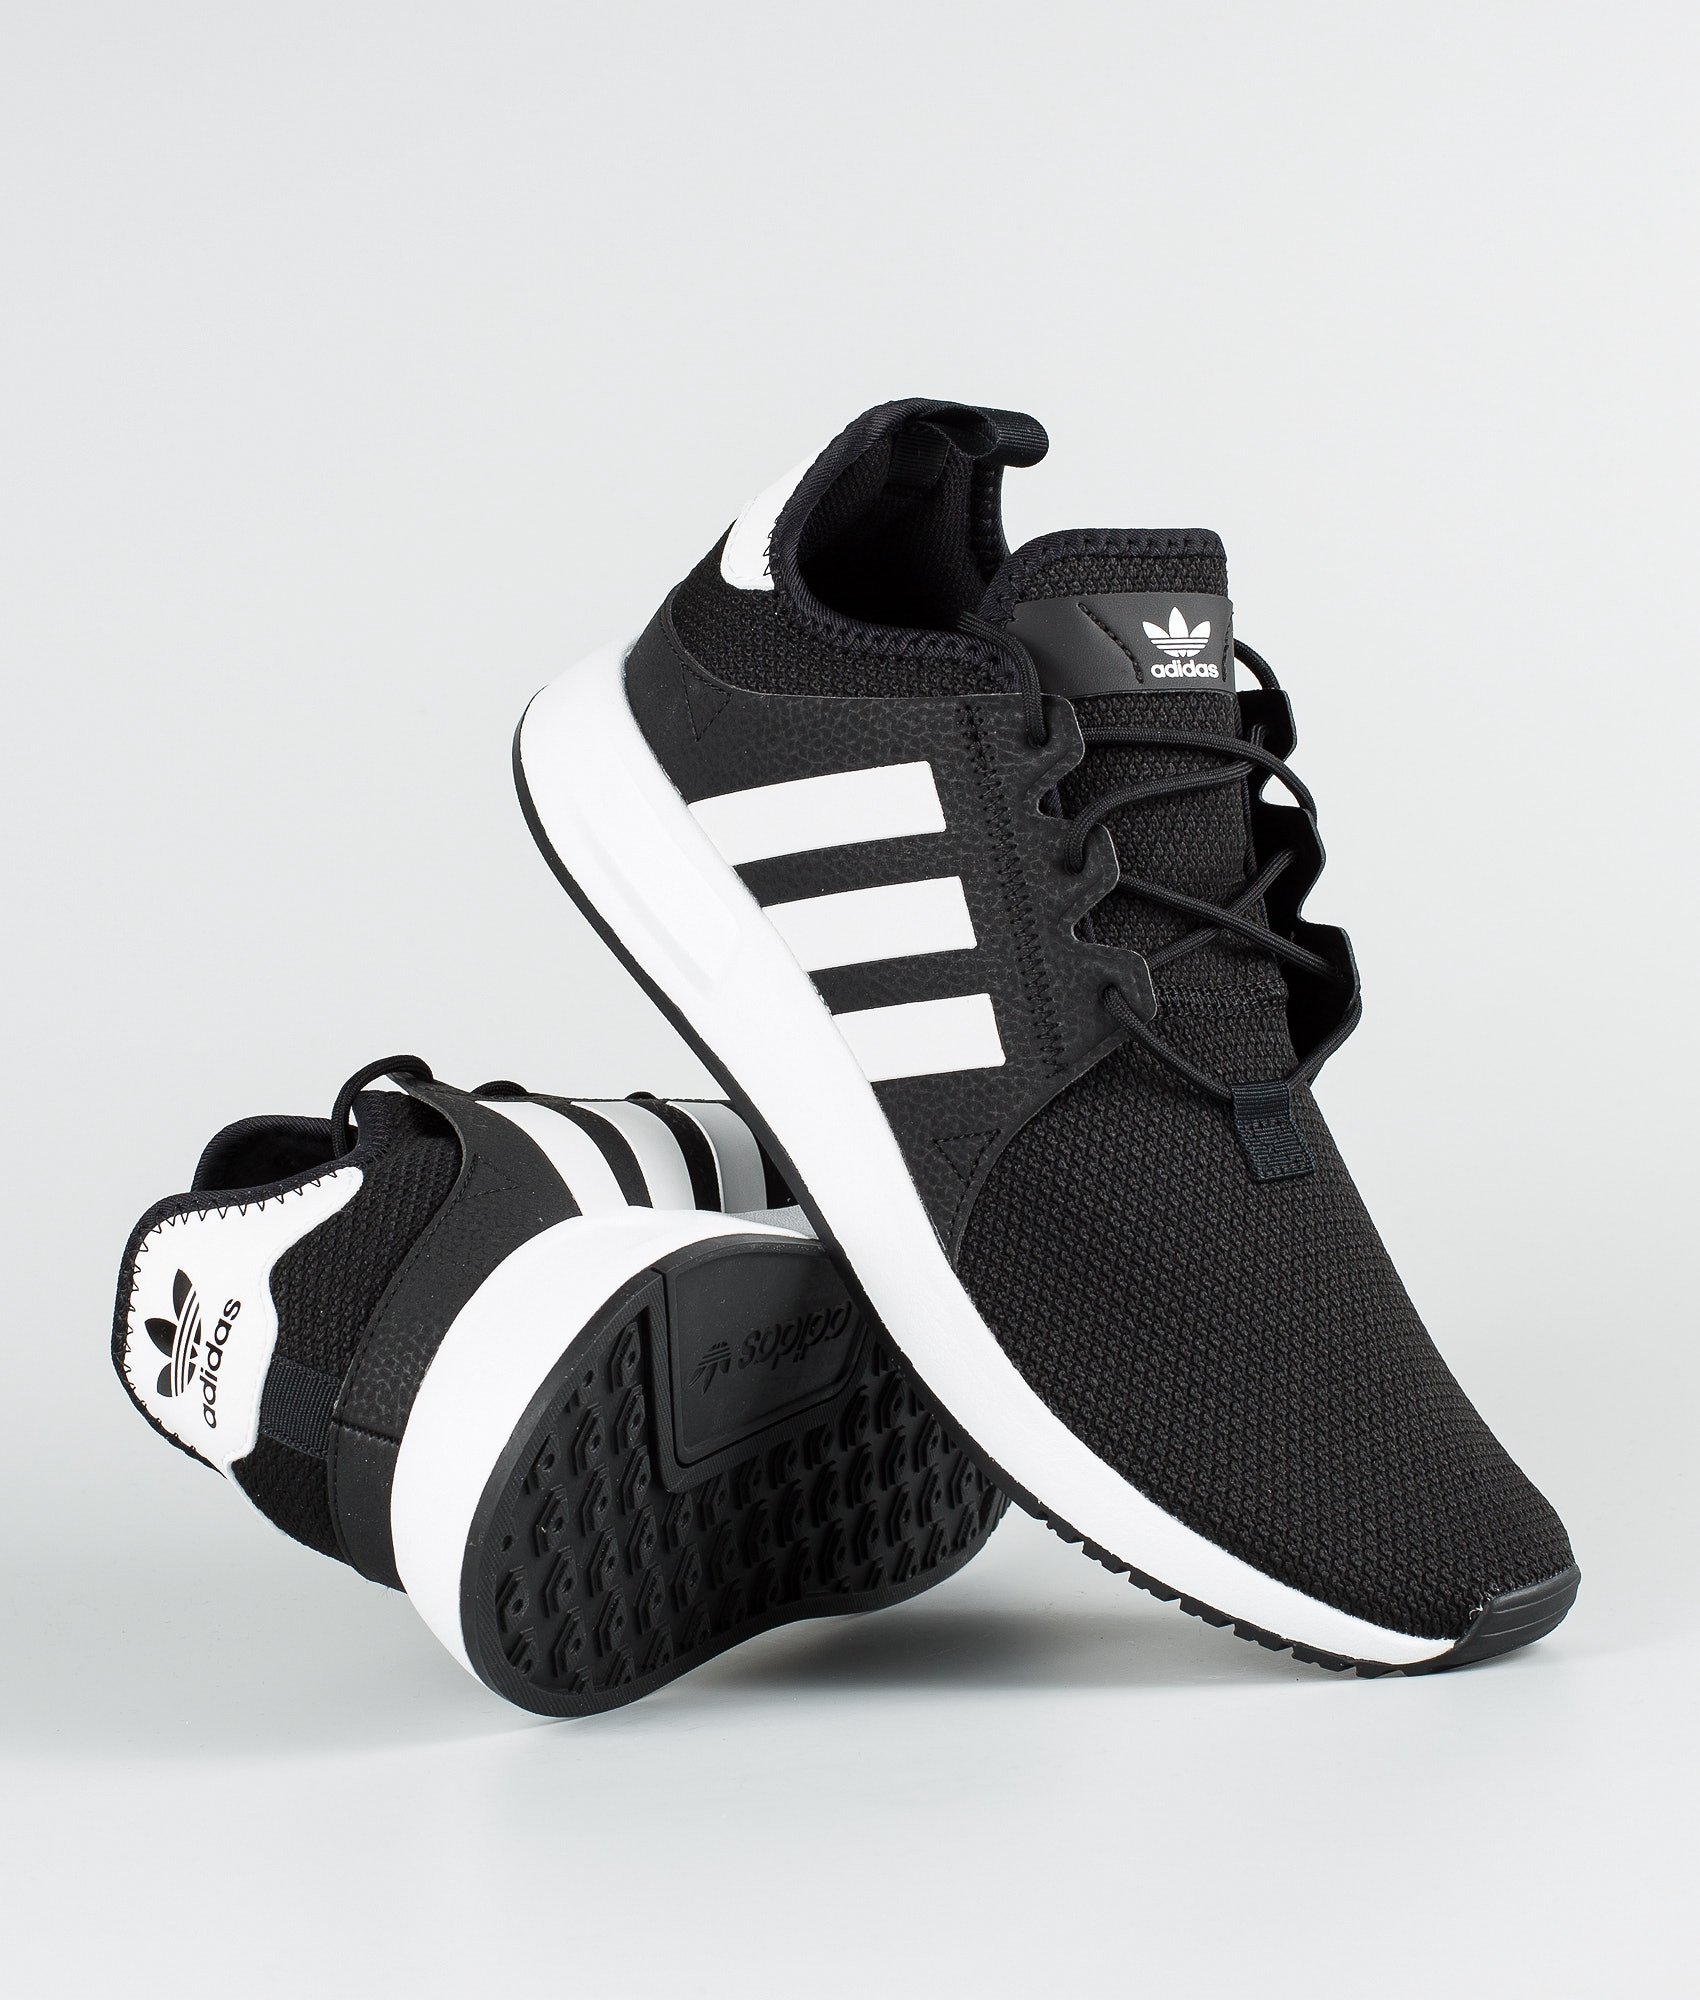 88f5da0f0426a Adidas Originals X_Plr Shoes Core Black/Ftwr White/Core Black ...